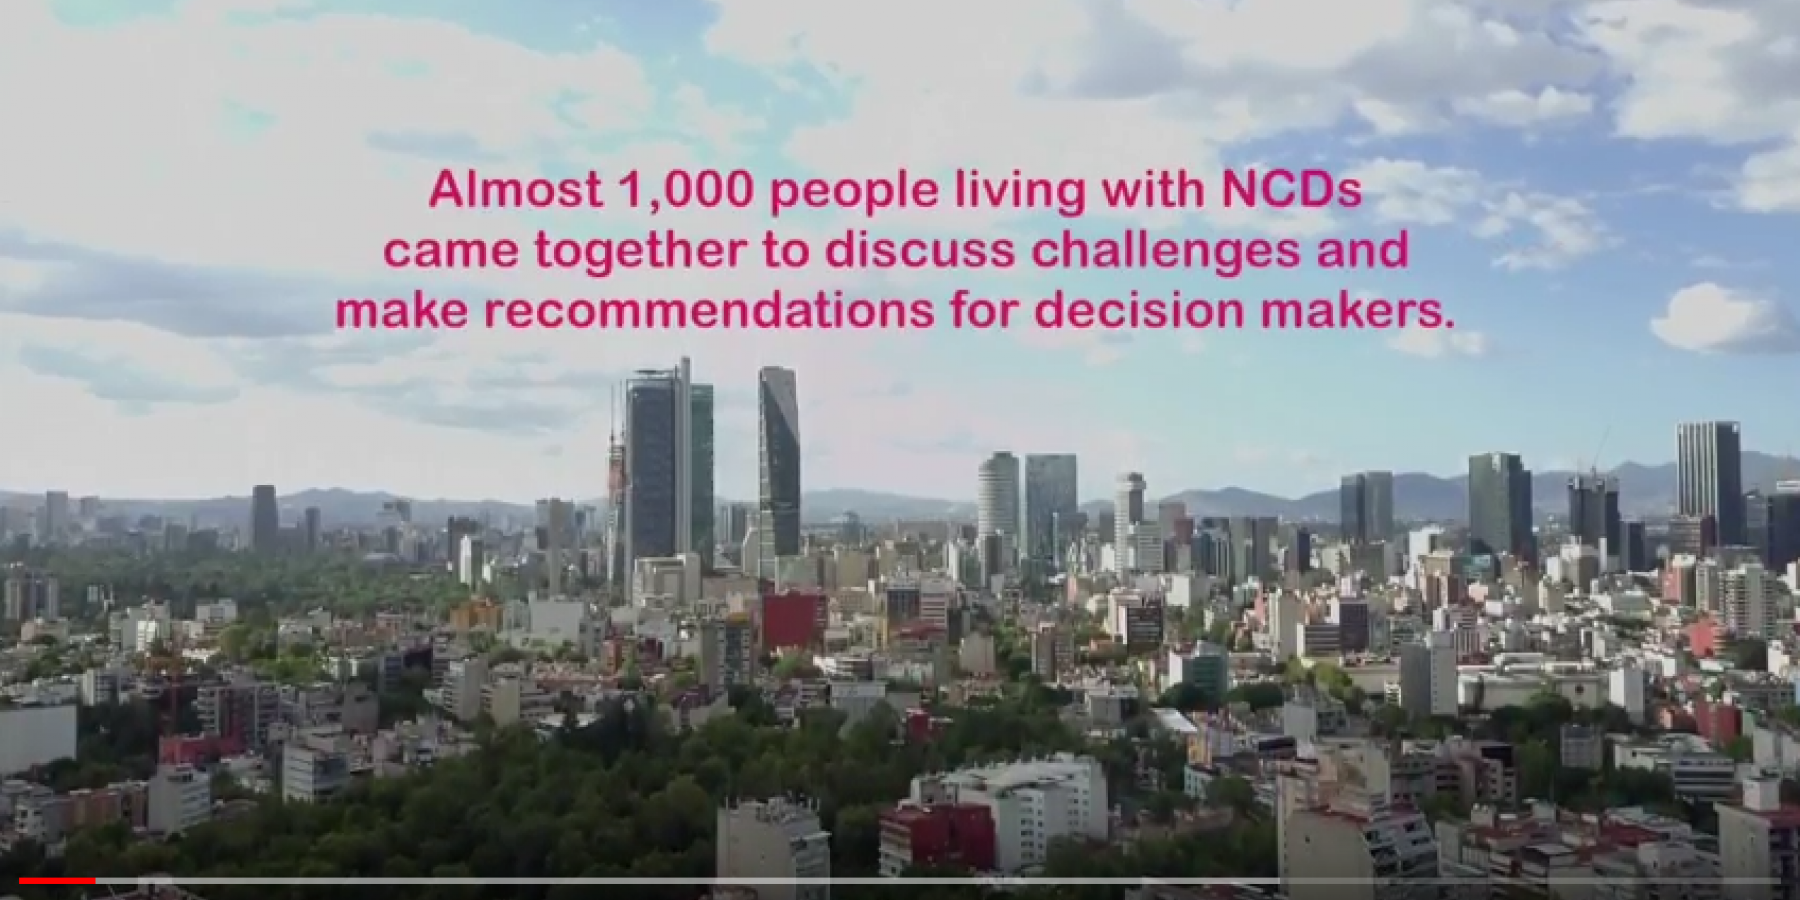 Our Views, Our Voices: Community conversations on NCDs in Mexico City